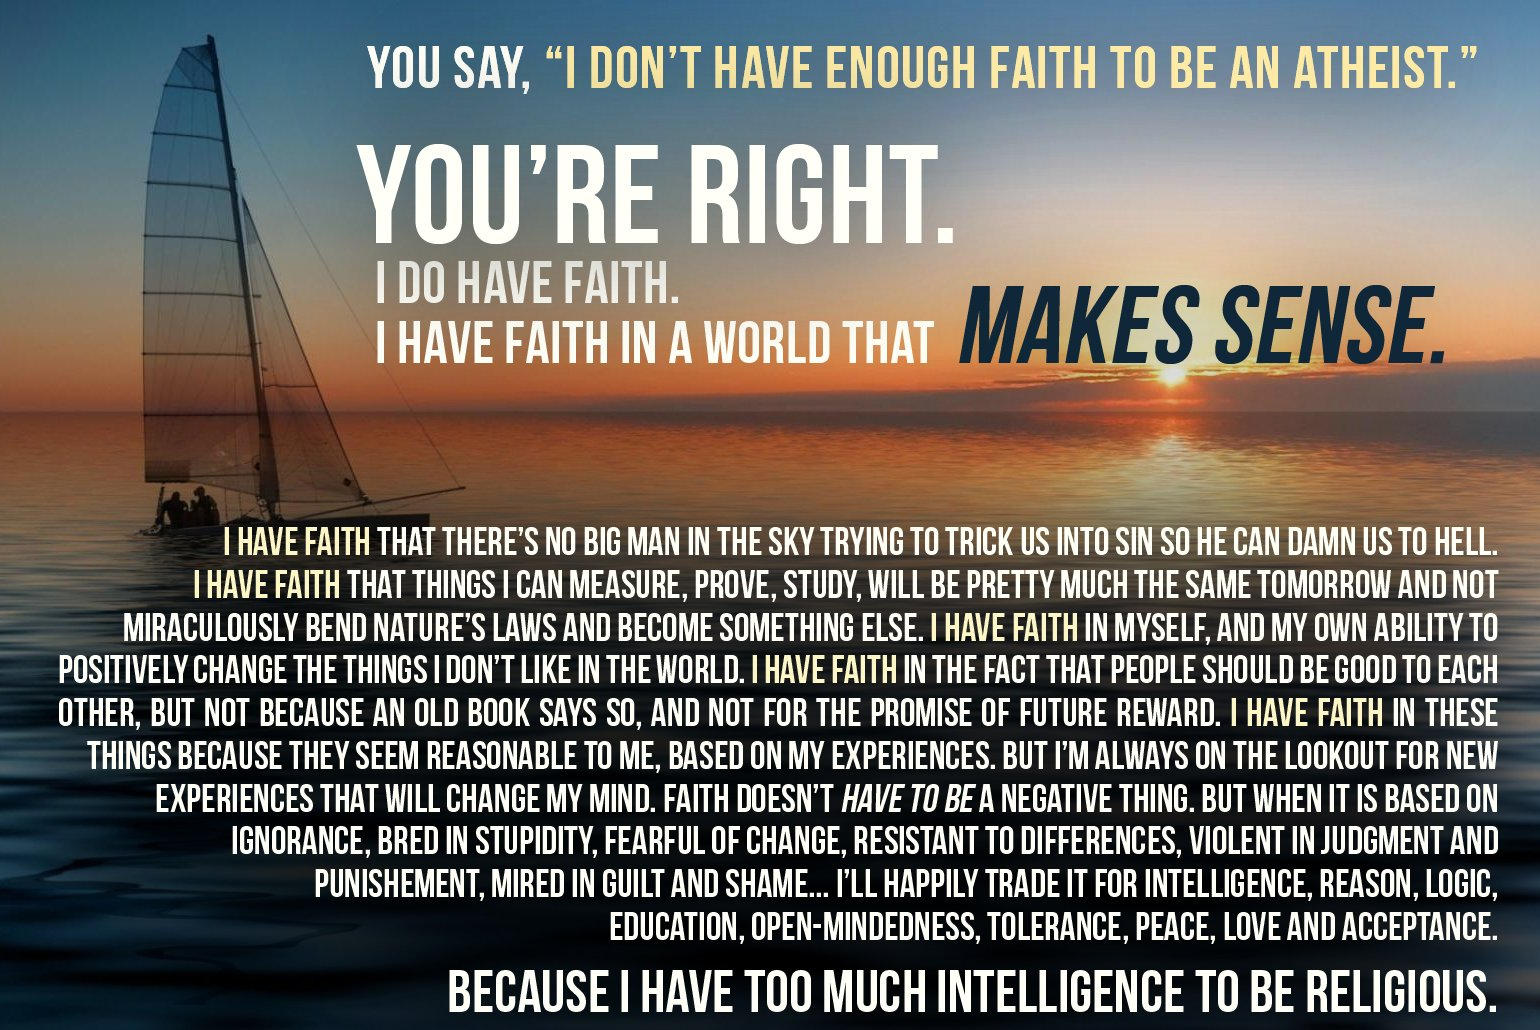 I don't have enough faith to be an atheist, but I have too much faith to be a Christian.